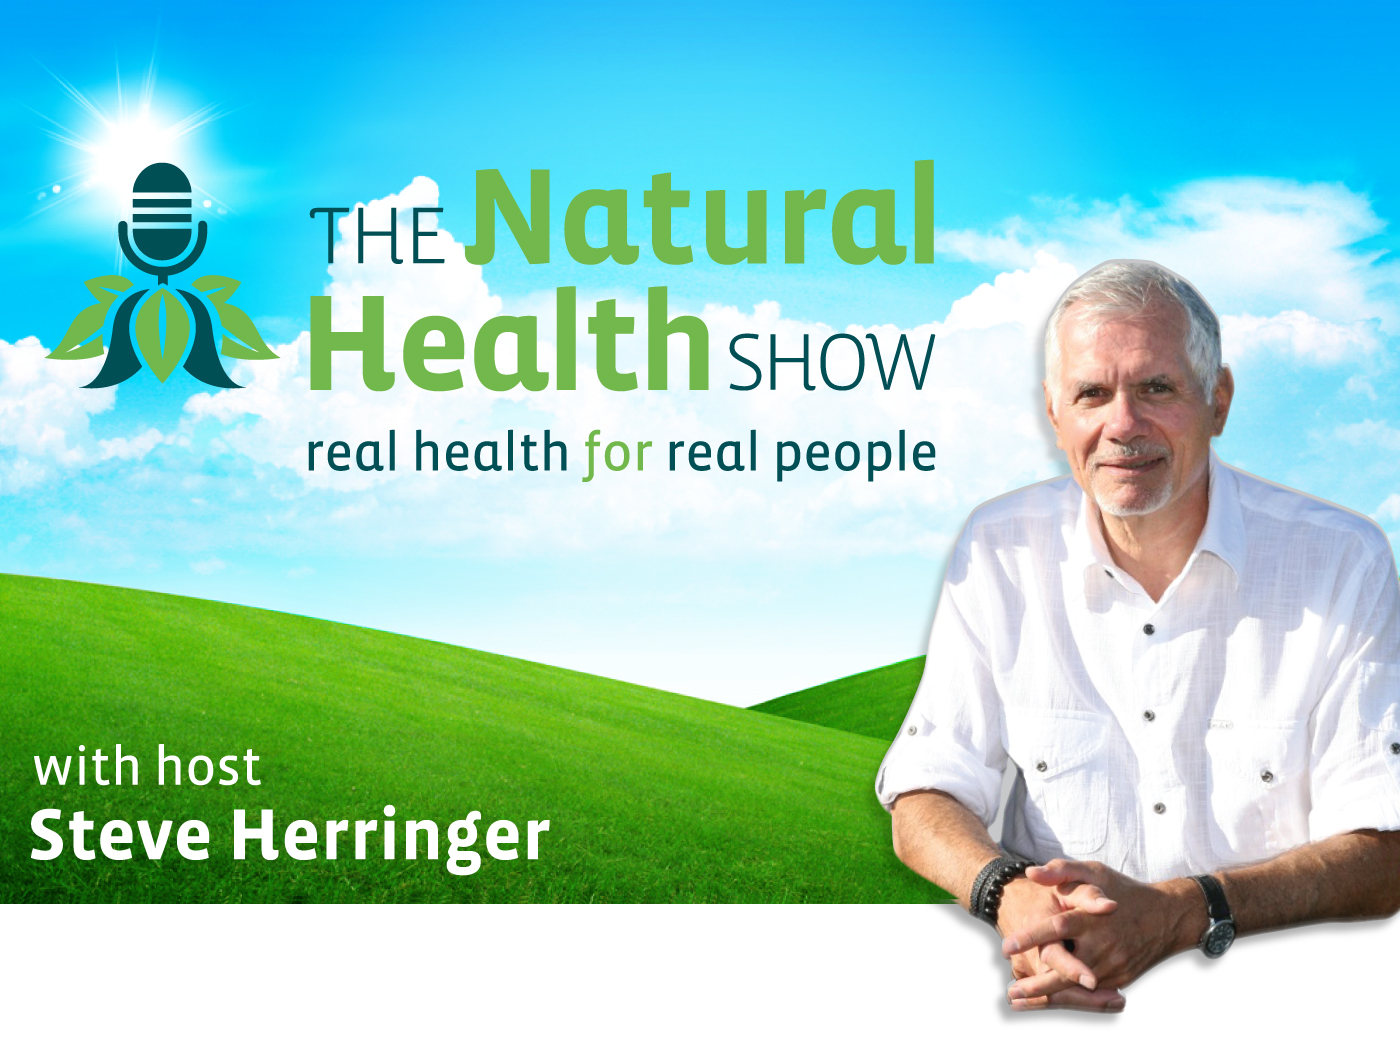 The Natural Health Show